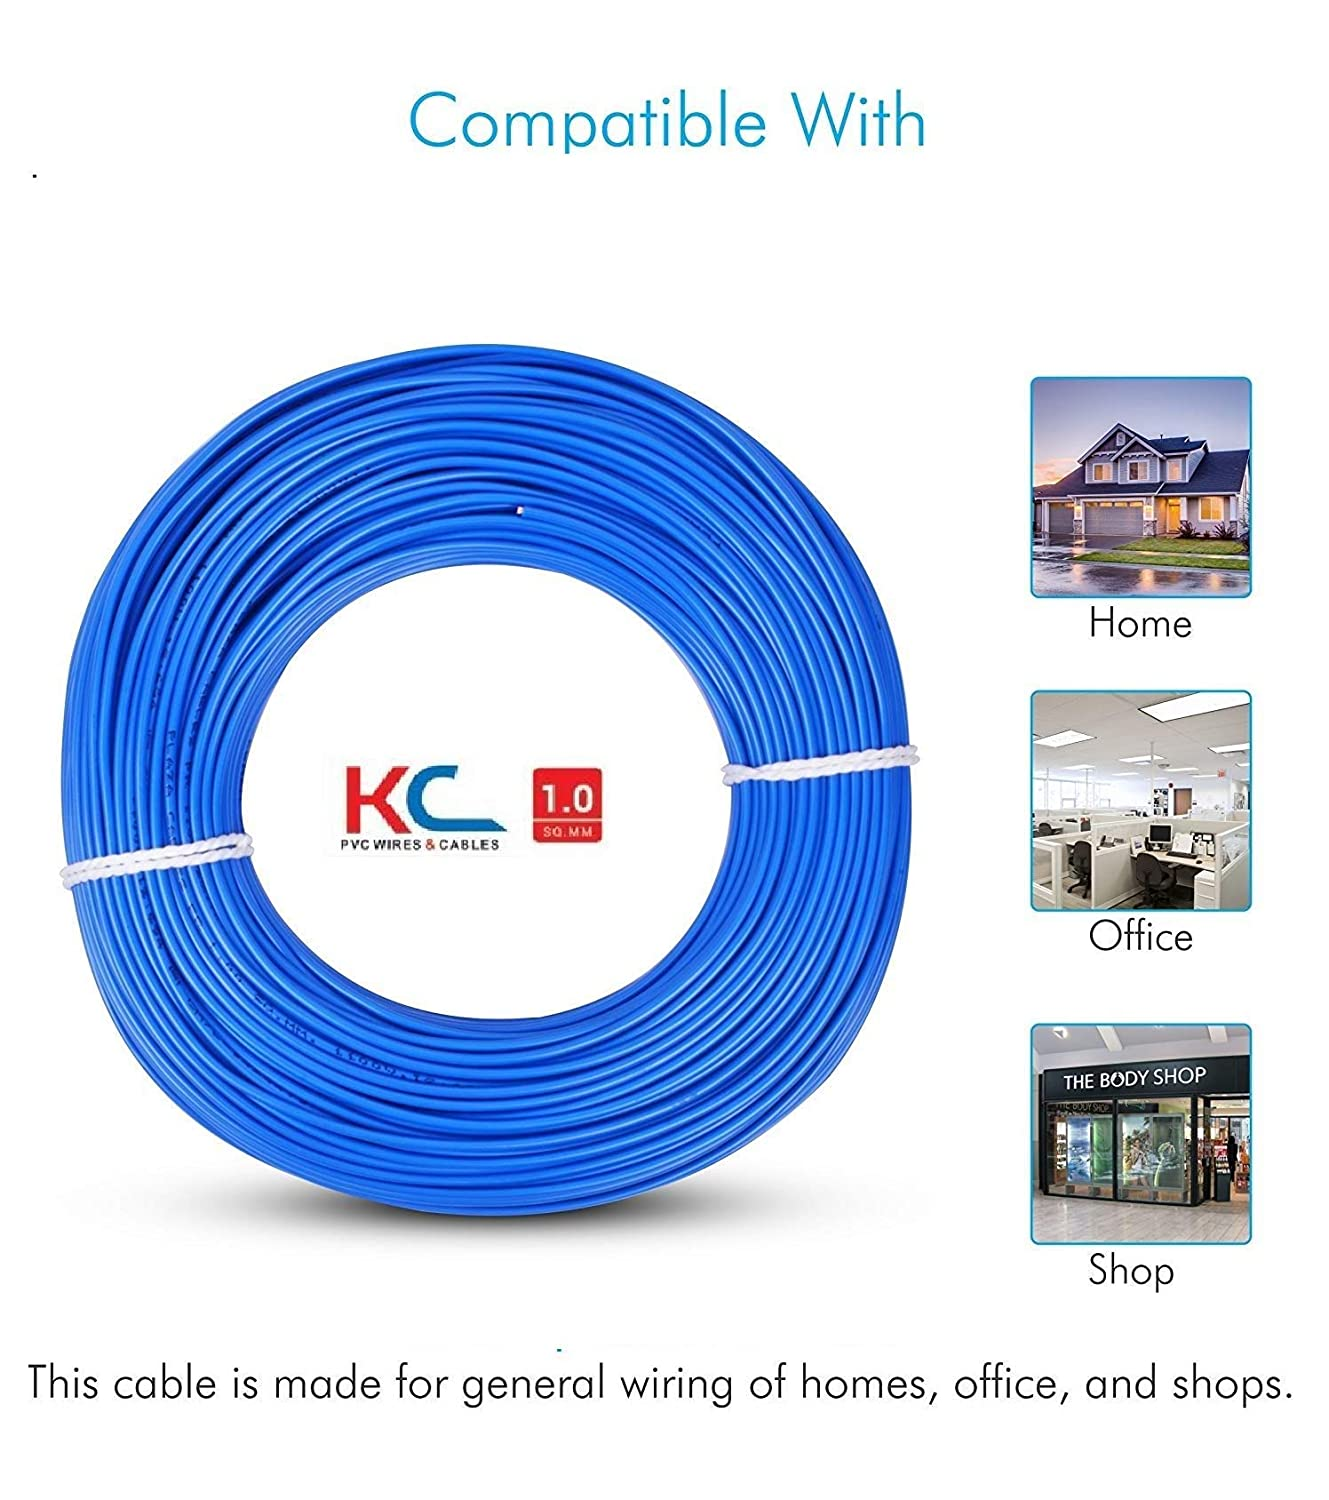 Kc Cab 1 Sq Mm Copper Pvc Insulated Wire 90mblue Home General Wiring Improvement